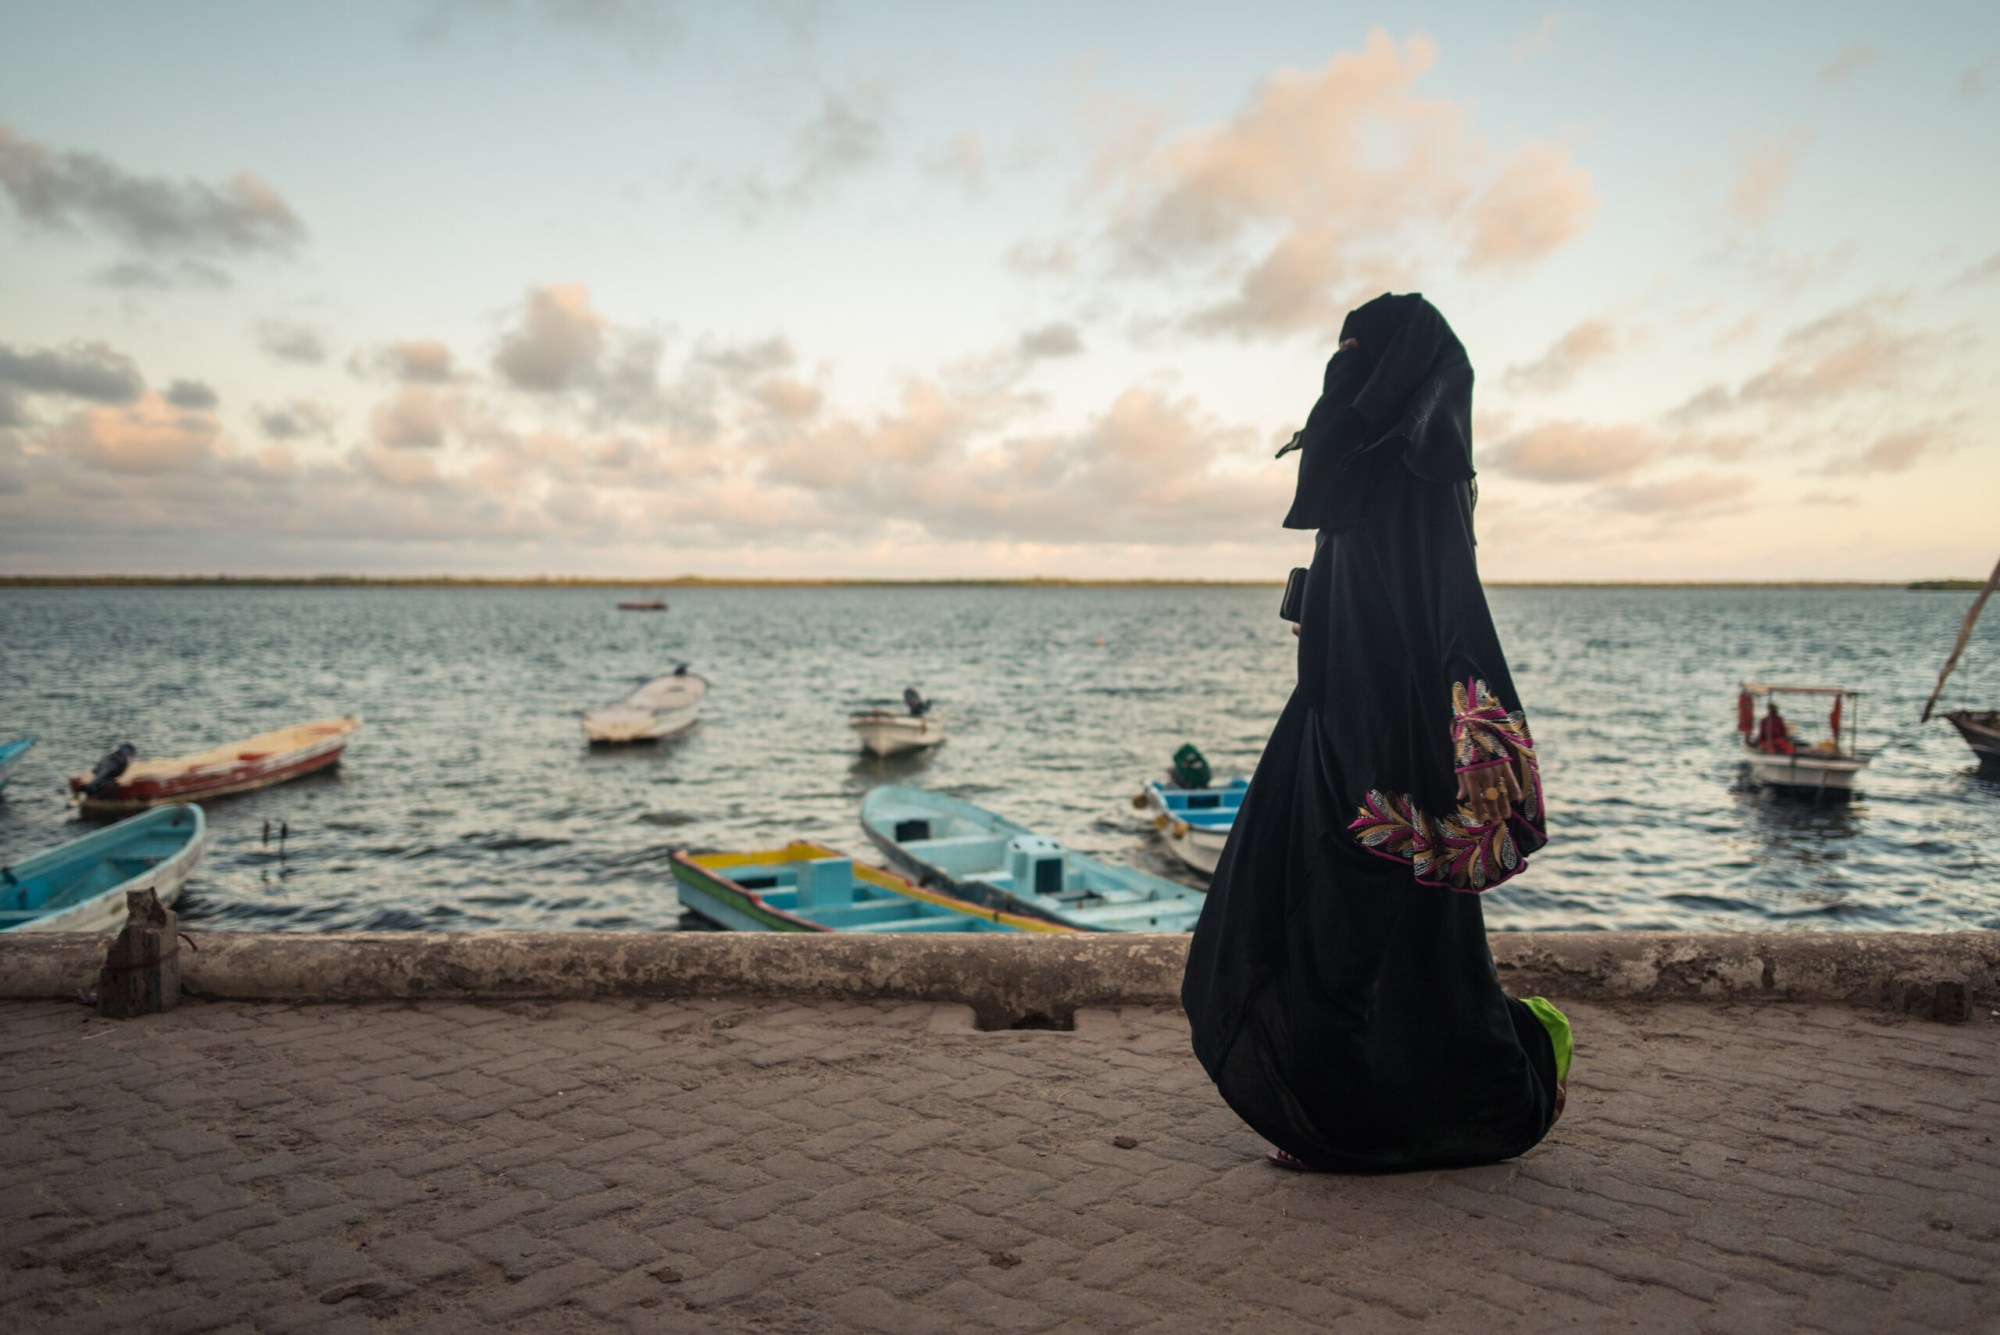 Volunteer Contribution: Pandemic Restrictions Highlight Hypocrisy of Islamophobia Faced by Muslim Women